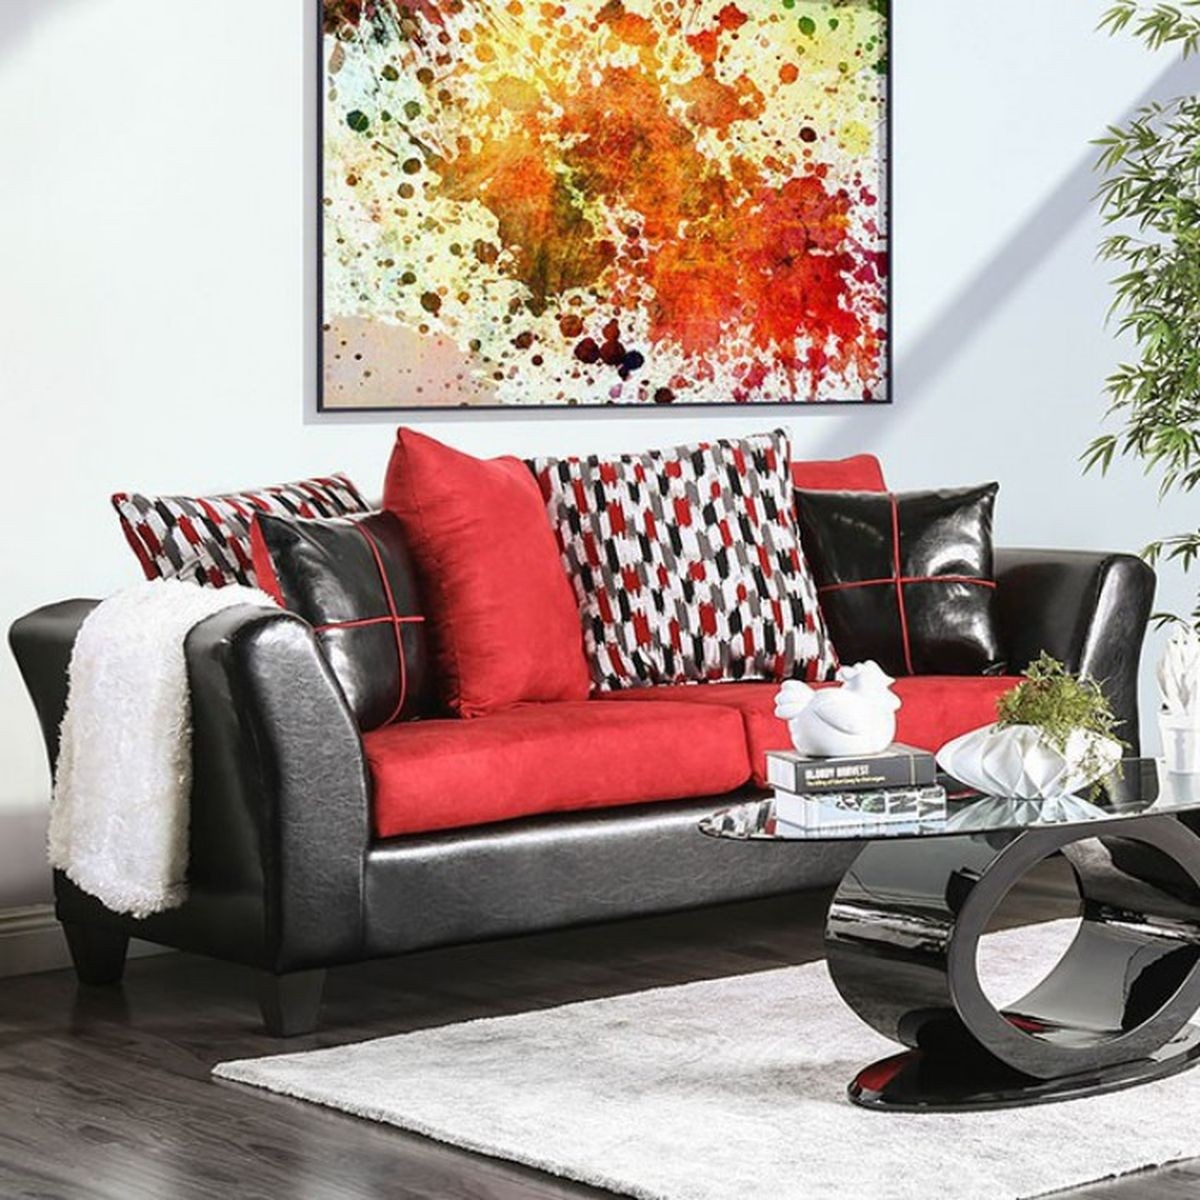 Furniture Of America Braelyn Living Room Set In Blackred with 14 Genius Tricks of How to Build Black And Red Living Room Set